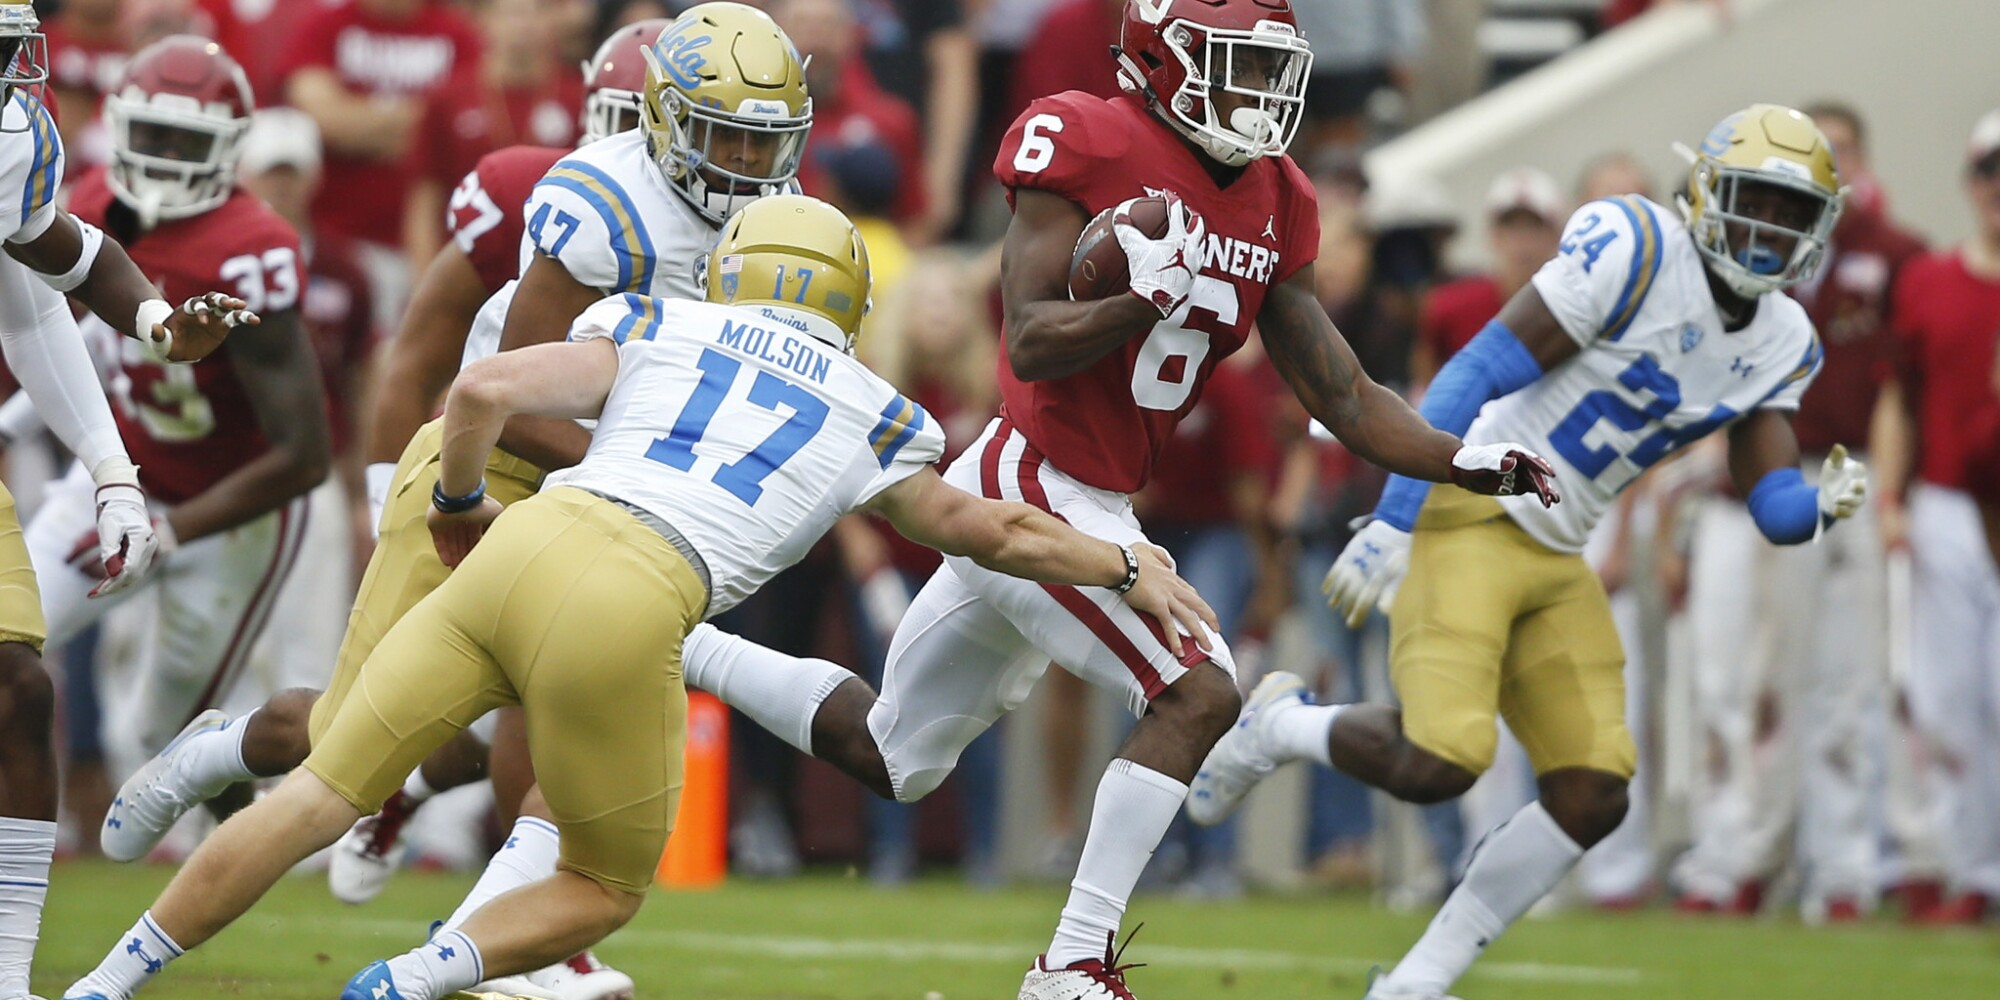 UCLA vs. Oklahoma: Recap from Bruins' 49-21 loss to Sooners